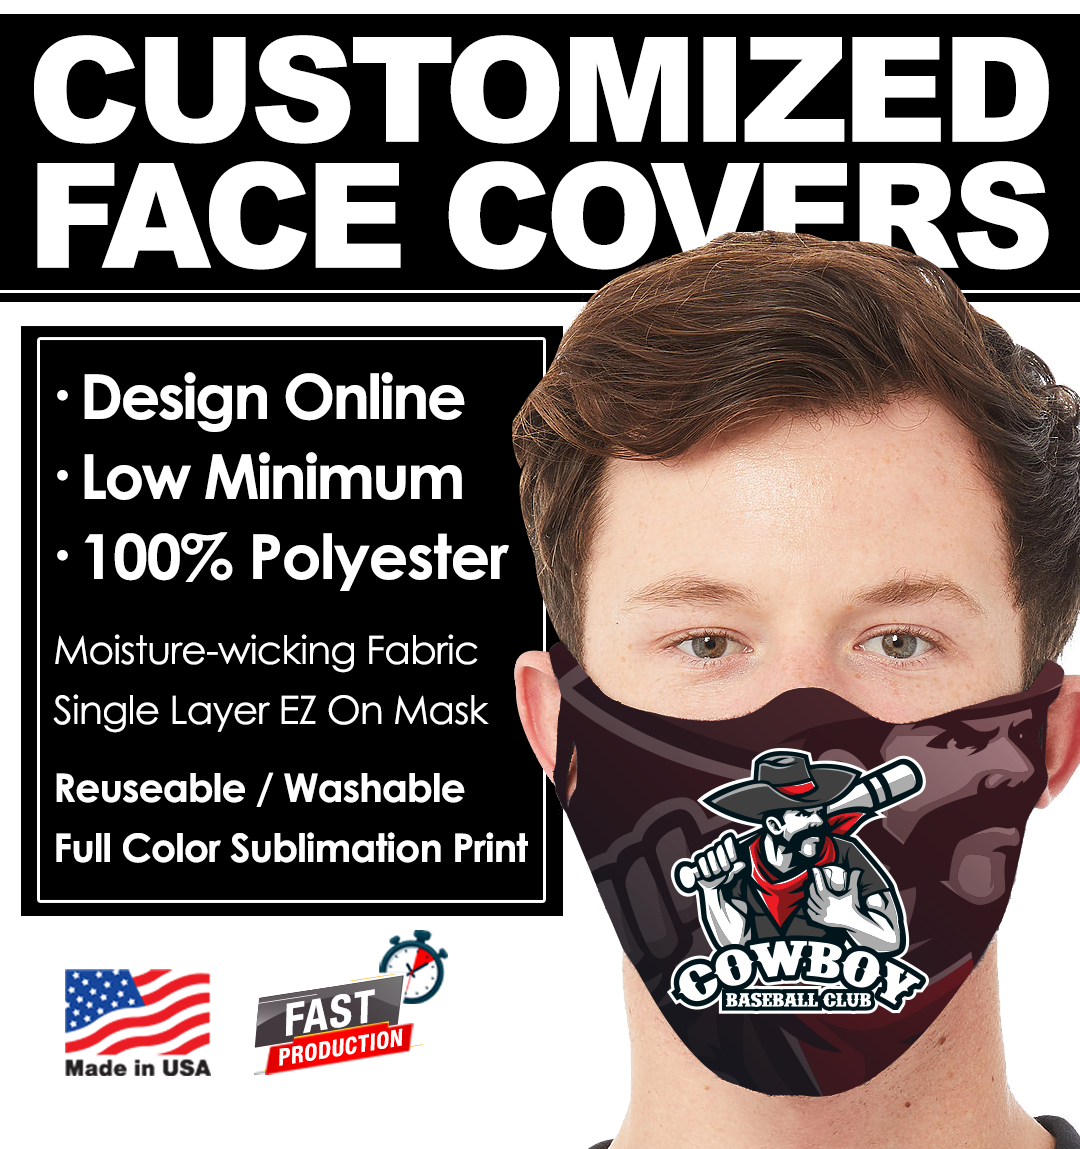 Face Covers customized with your companies logos or colors. Dye-sublimation printed over the entire face of the mask.